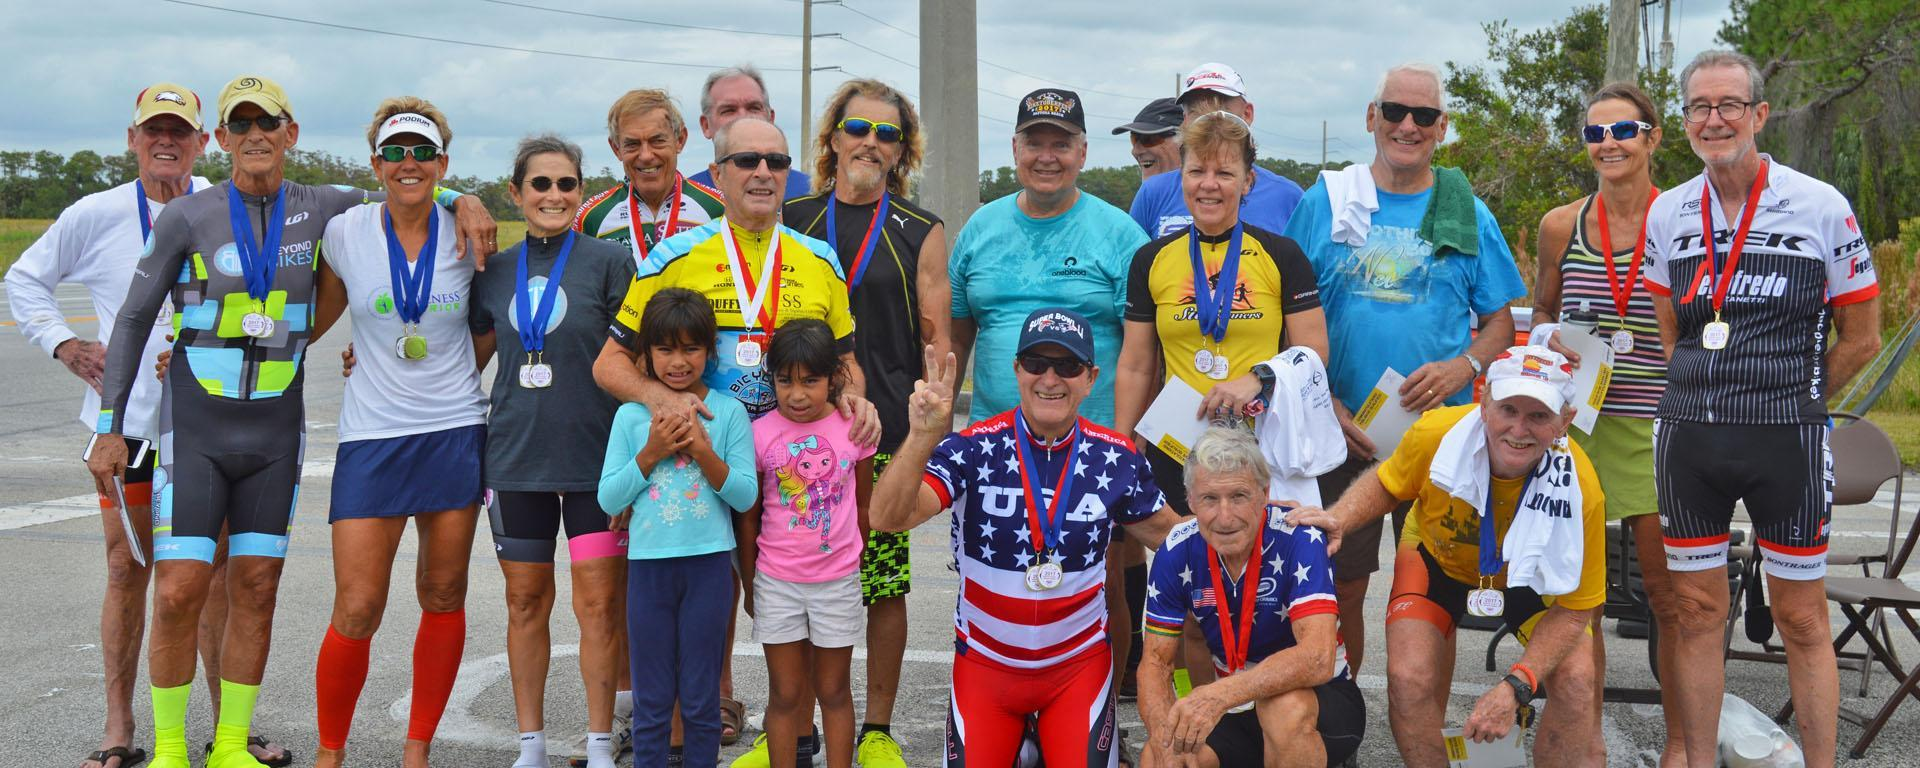 Martin County Senior Games participants in a group photo.